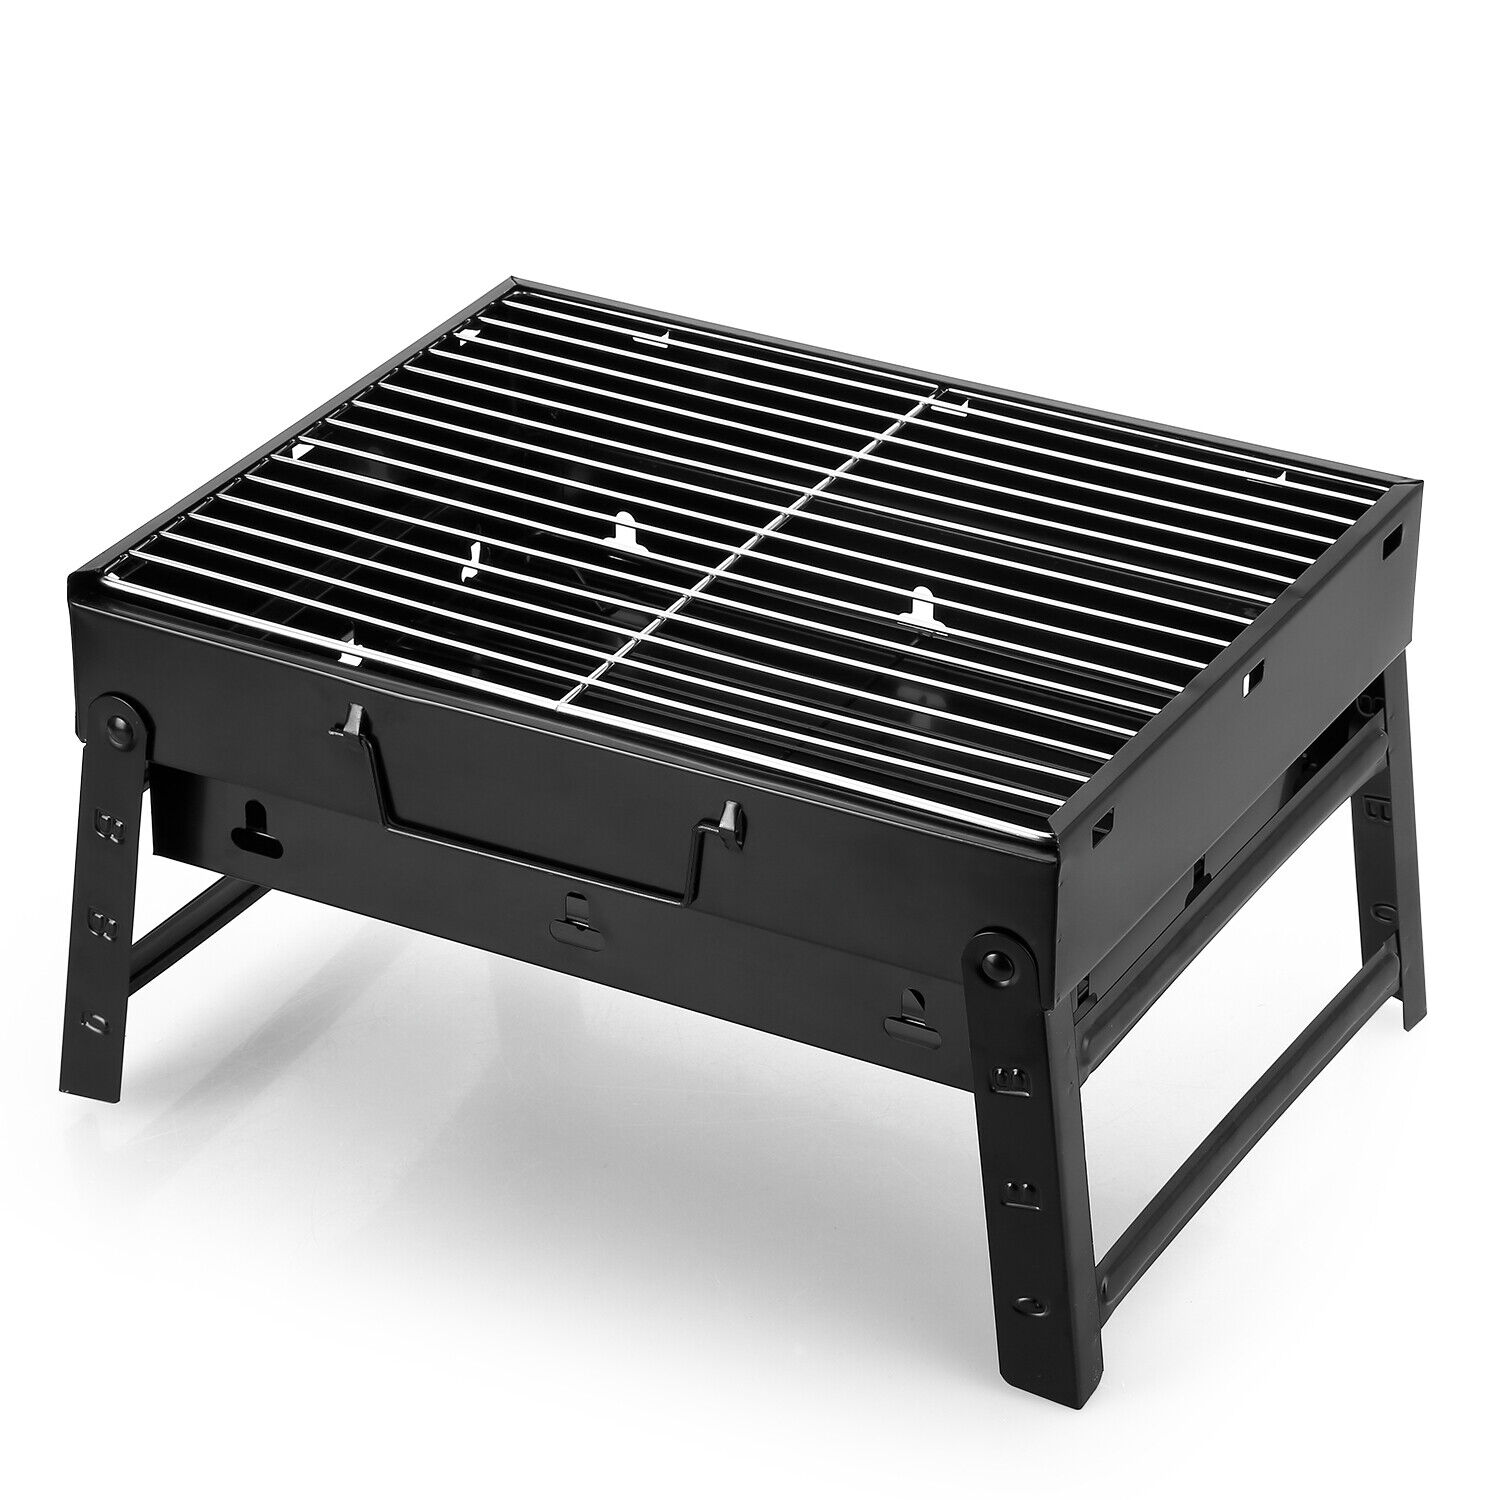 BBQ Faltbar Holzkohlegrill Klappgrill Tischgrill Outdoor Camping Barbecue Grill